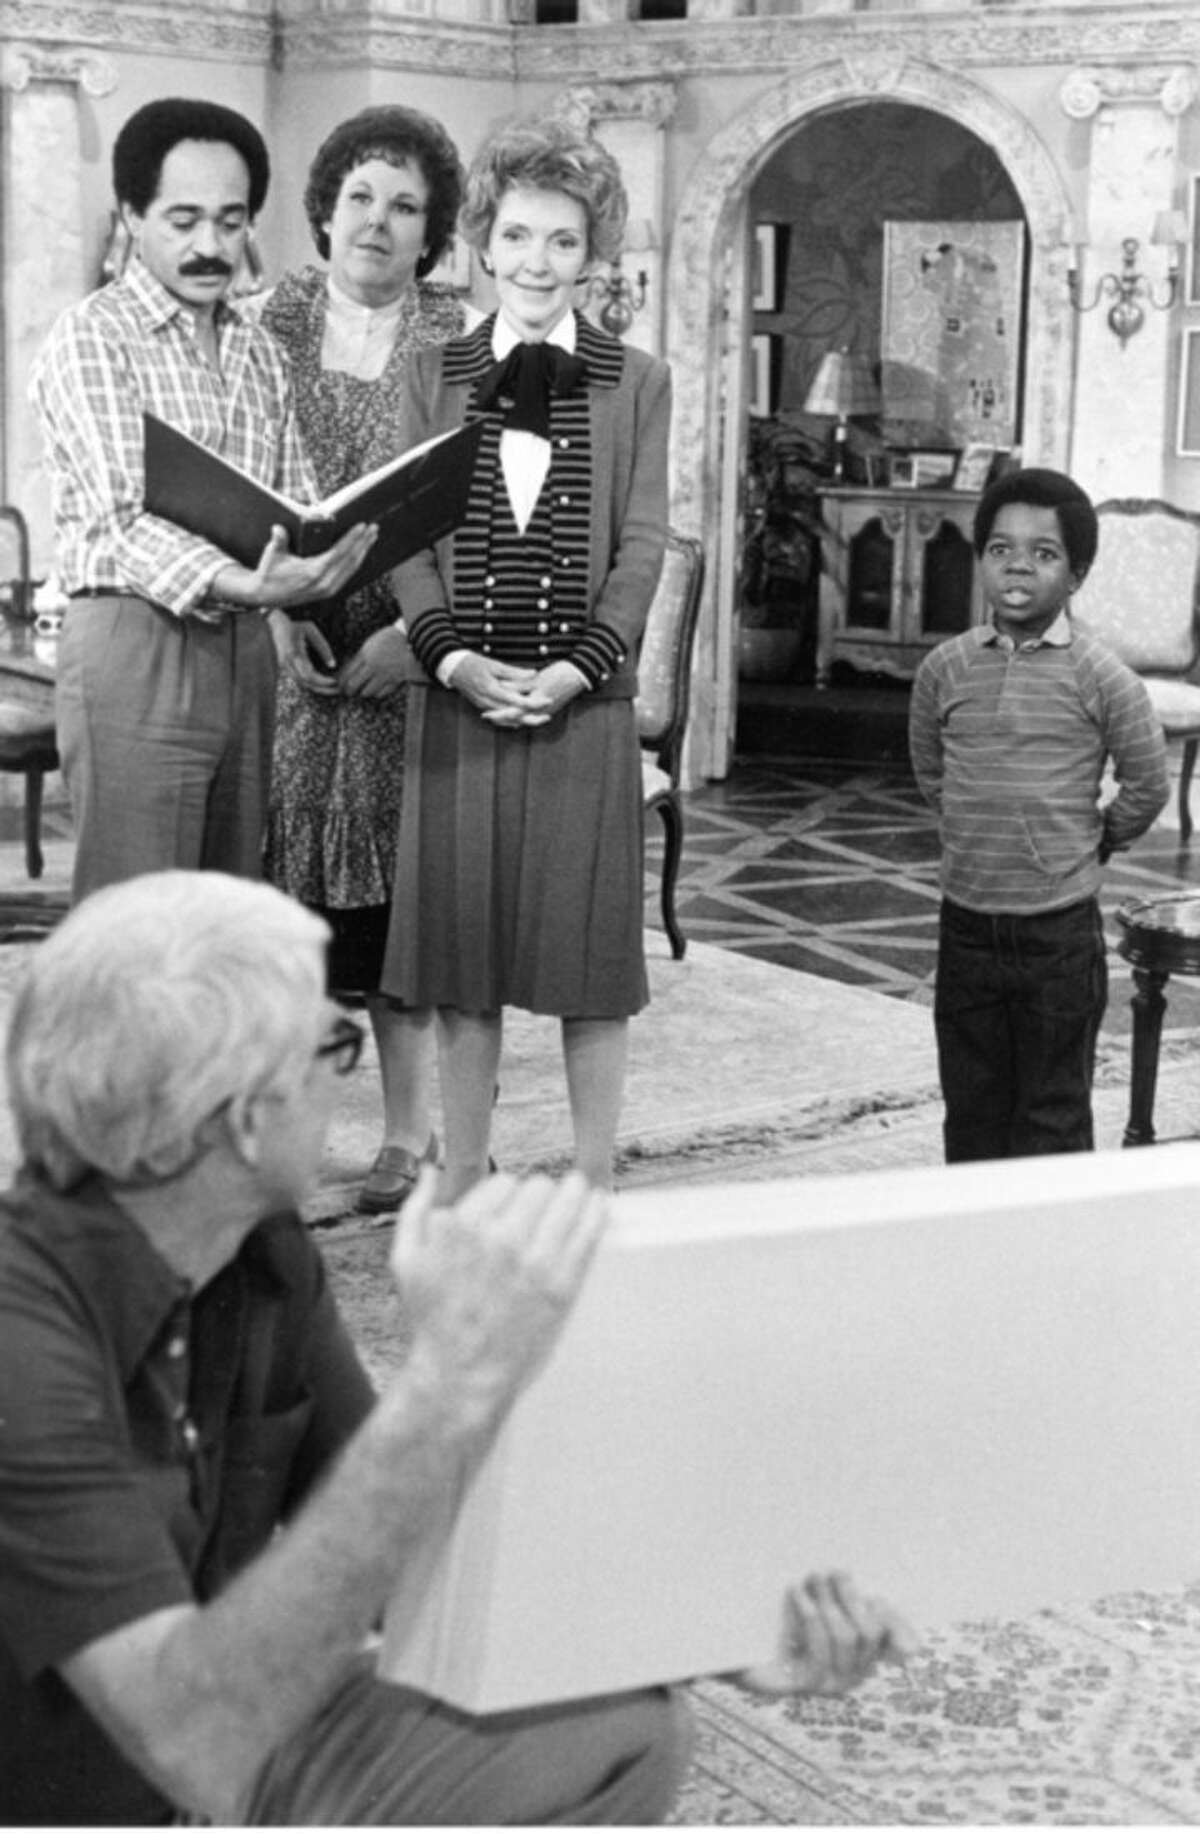 FILE - In this March 11, 1983 file photo, first lady Nancy Reagan goes over cue cards on the Los Angeles set of the television series